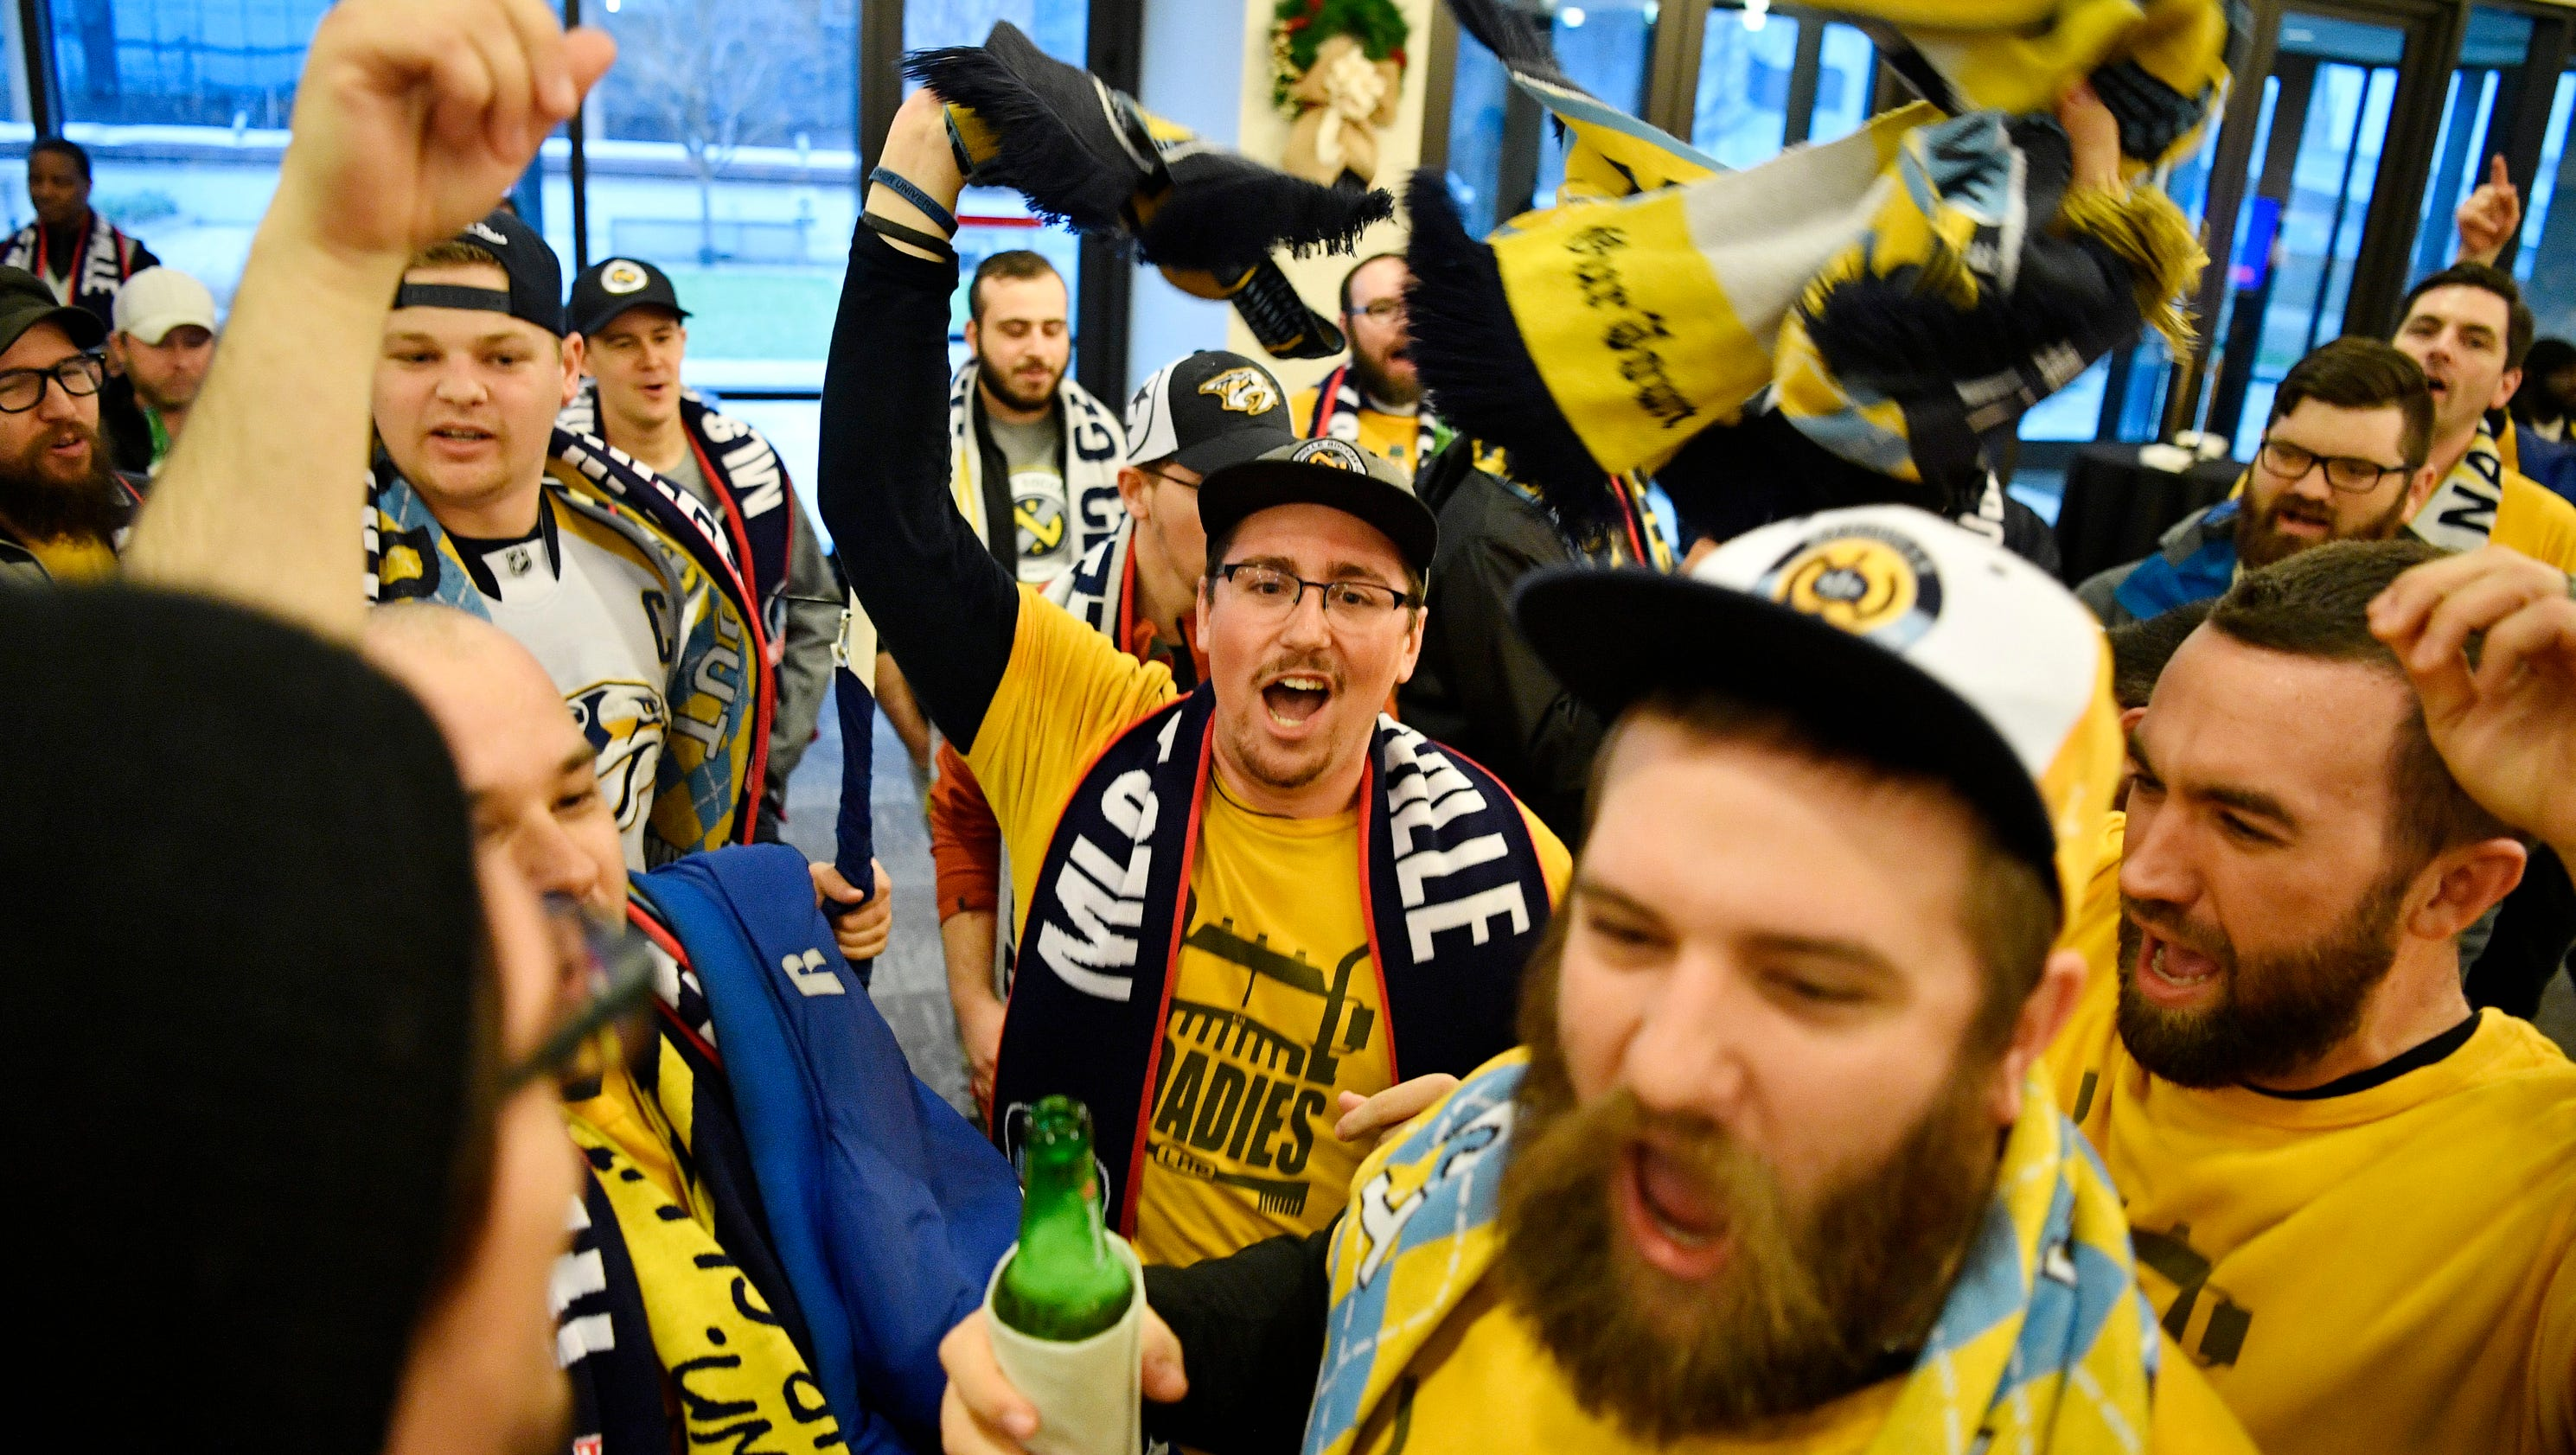 MLS expansion: MLS commissioner says Nashville a city 'we've really fallen  in love with'